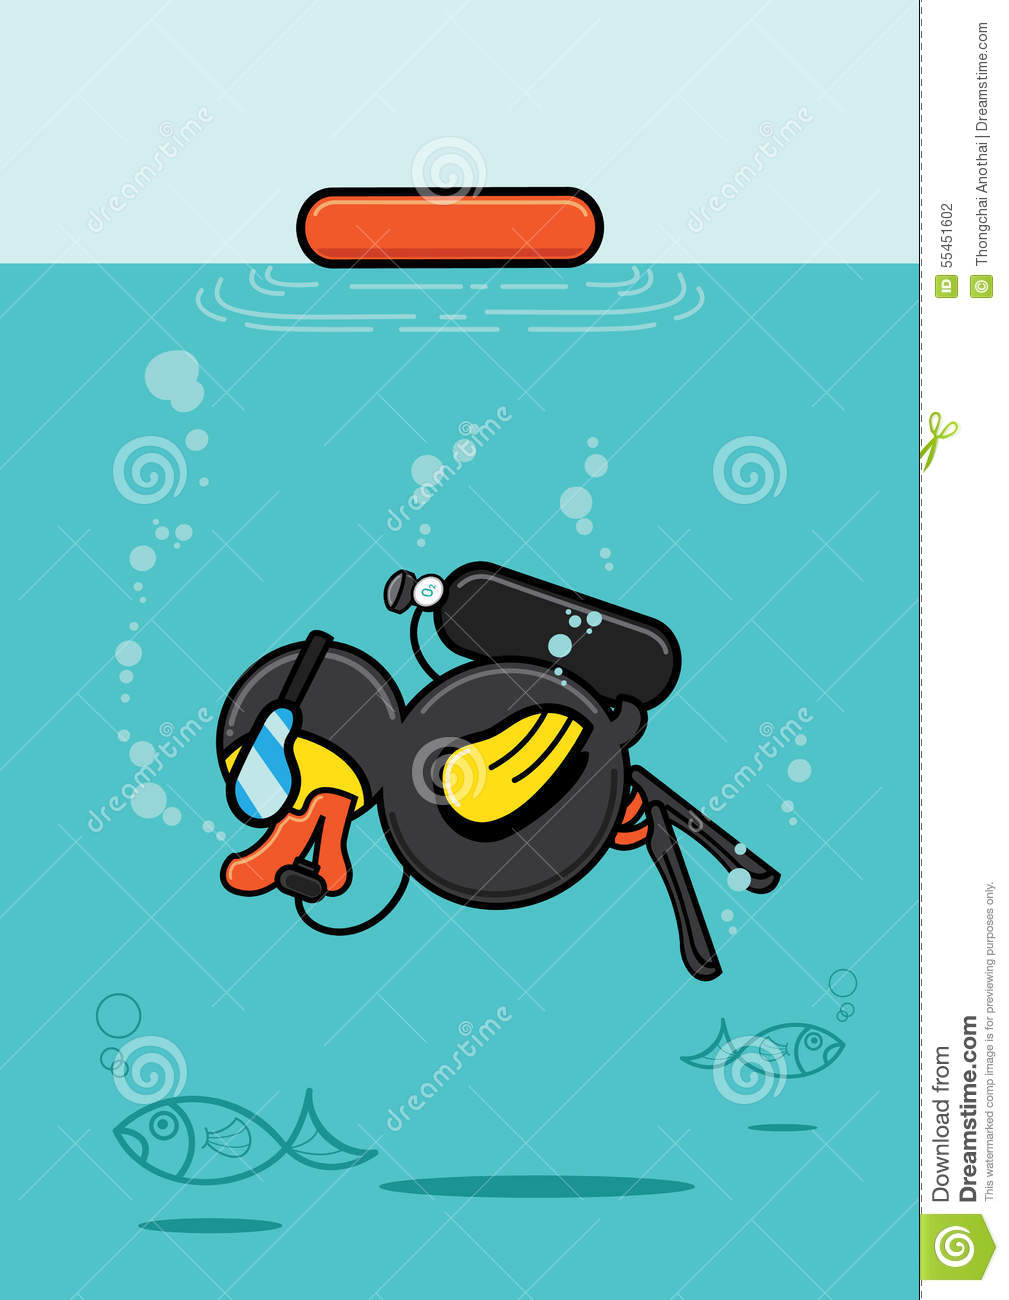 Stock Illustration Diving Equipment Icons Mask Snorkel Oxygen Tanks Wetsuit Vector Illustration Image61437760 moreover Underwater further 714 Oxygen Cylinder Safety Log Book additionally Air Buddy Bridges The Gap Between Snorkeling Freediving And Scuba Diving besides Isabella 15416358. on scuba oxygen tank